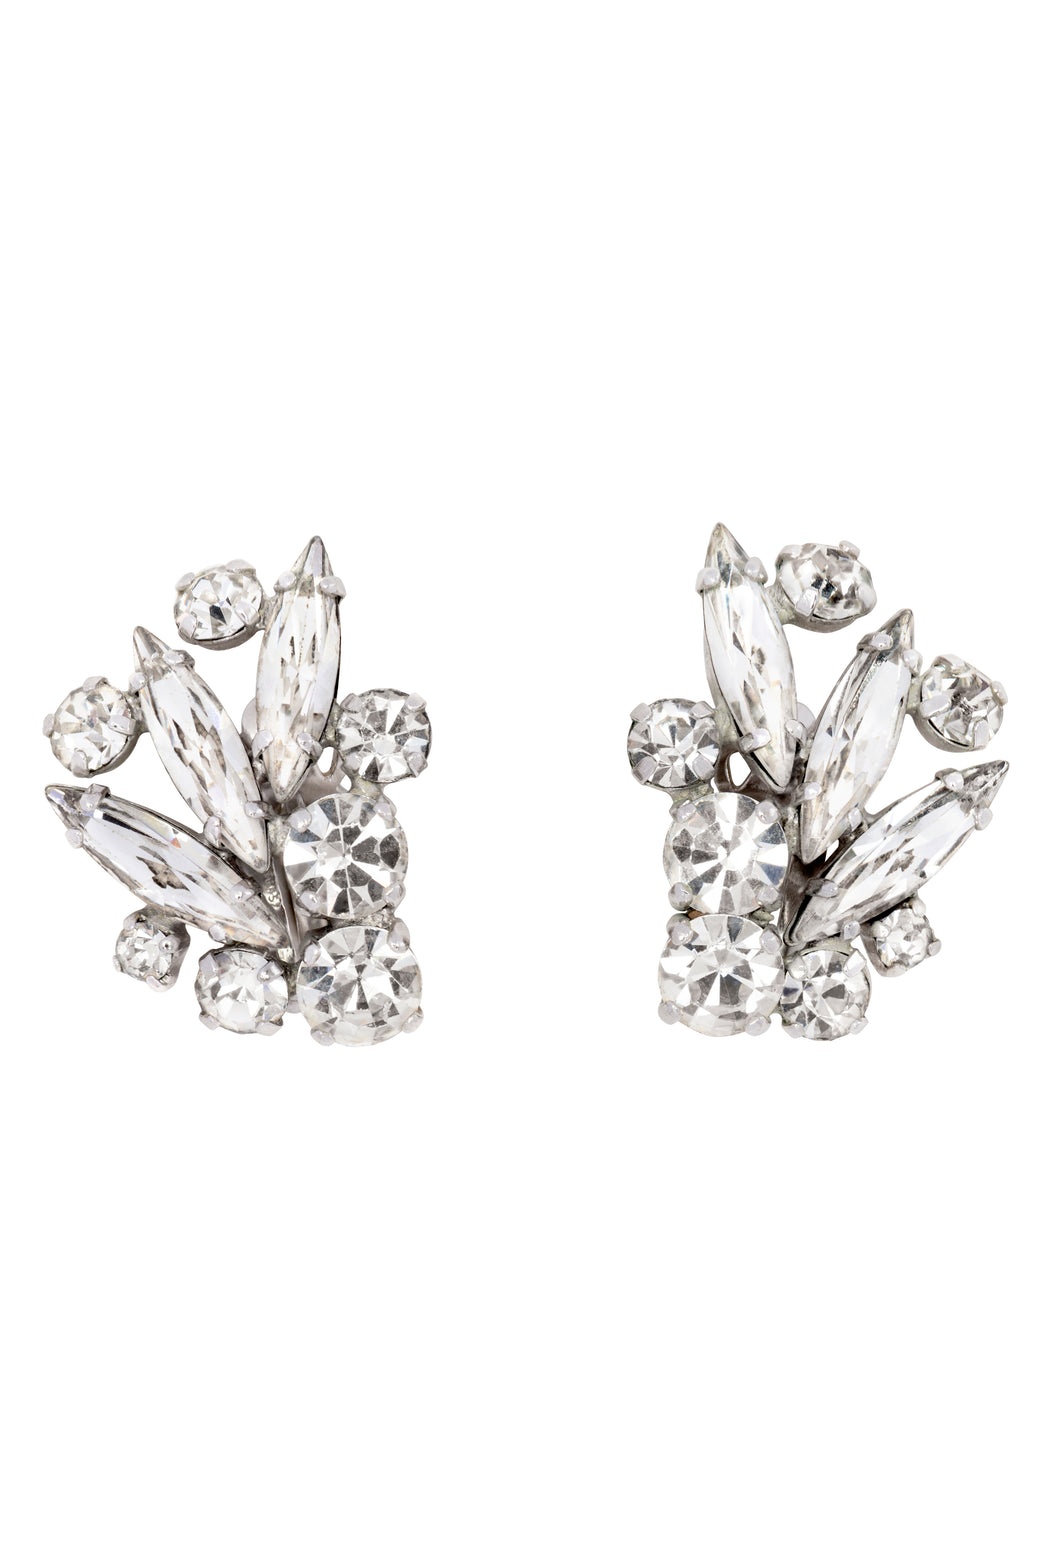 VISCOUNTESS  EARRINGS